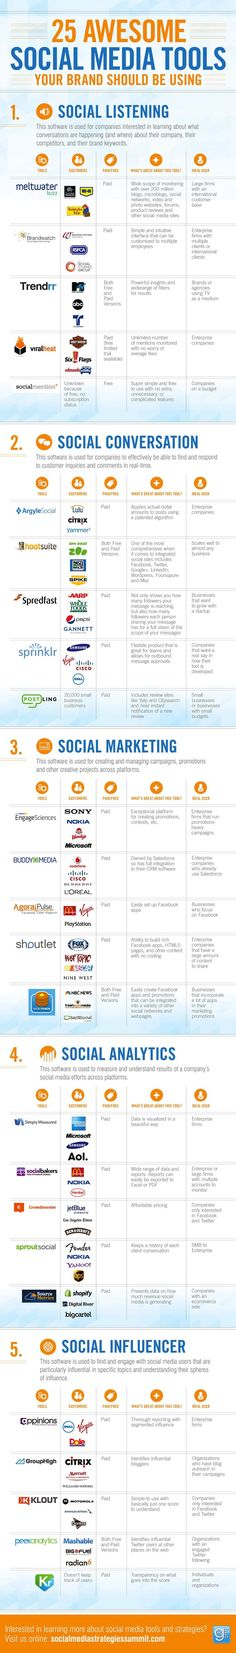 Great Infographic on Social Media Tools and their use....